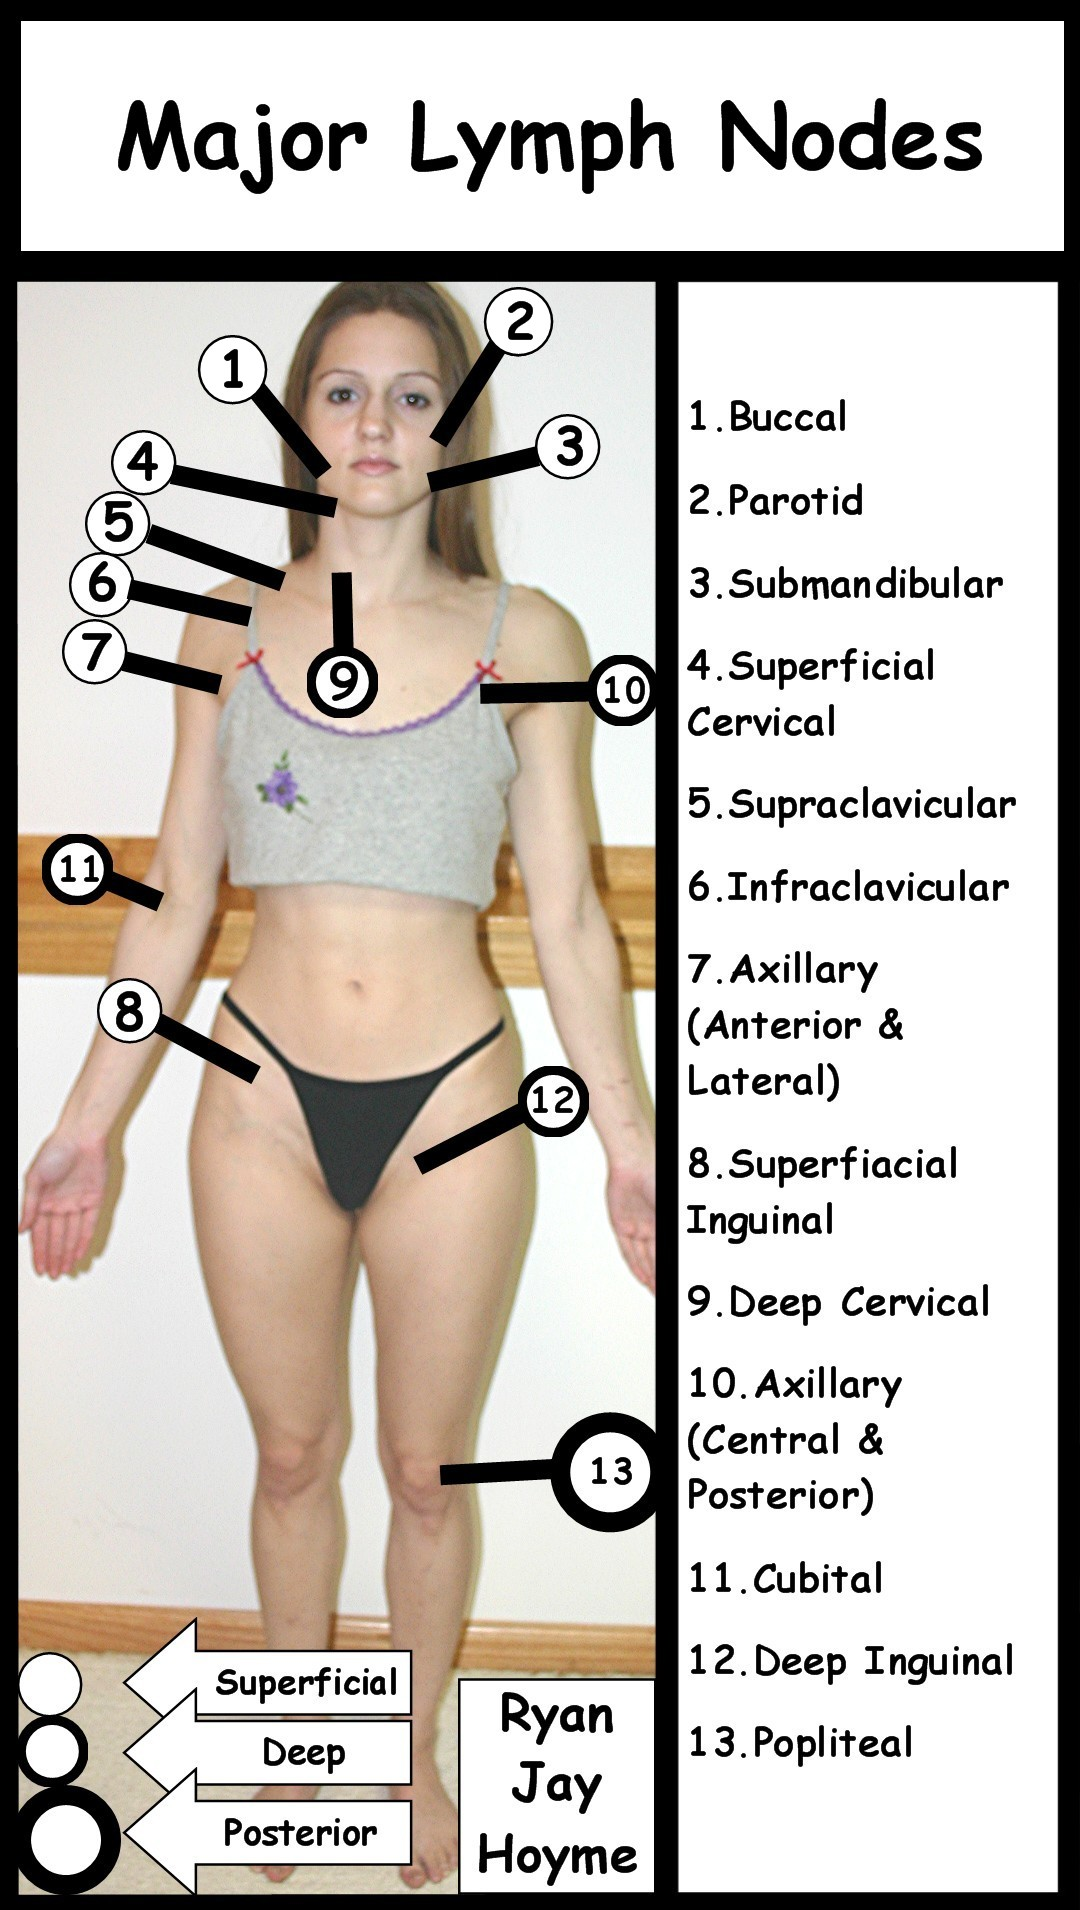 Where Are Lymph Nodes in Body